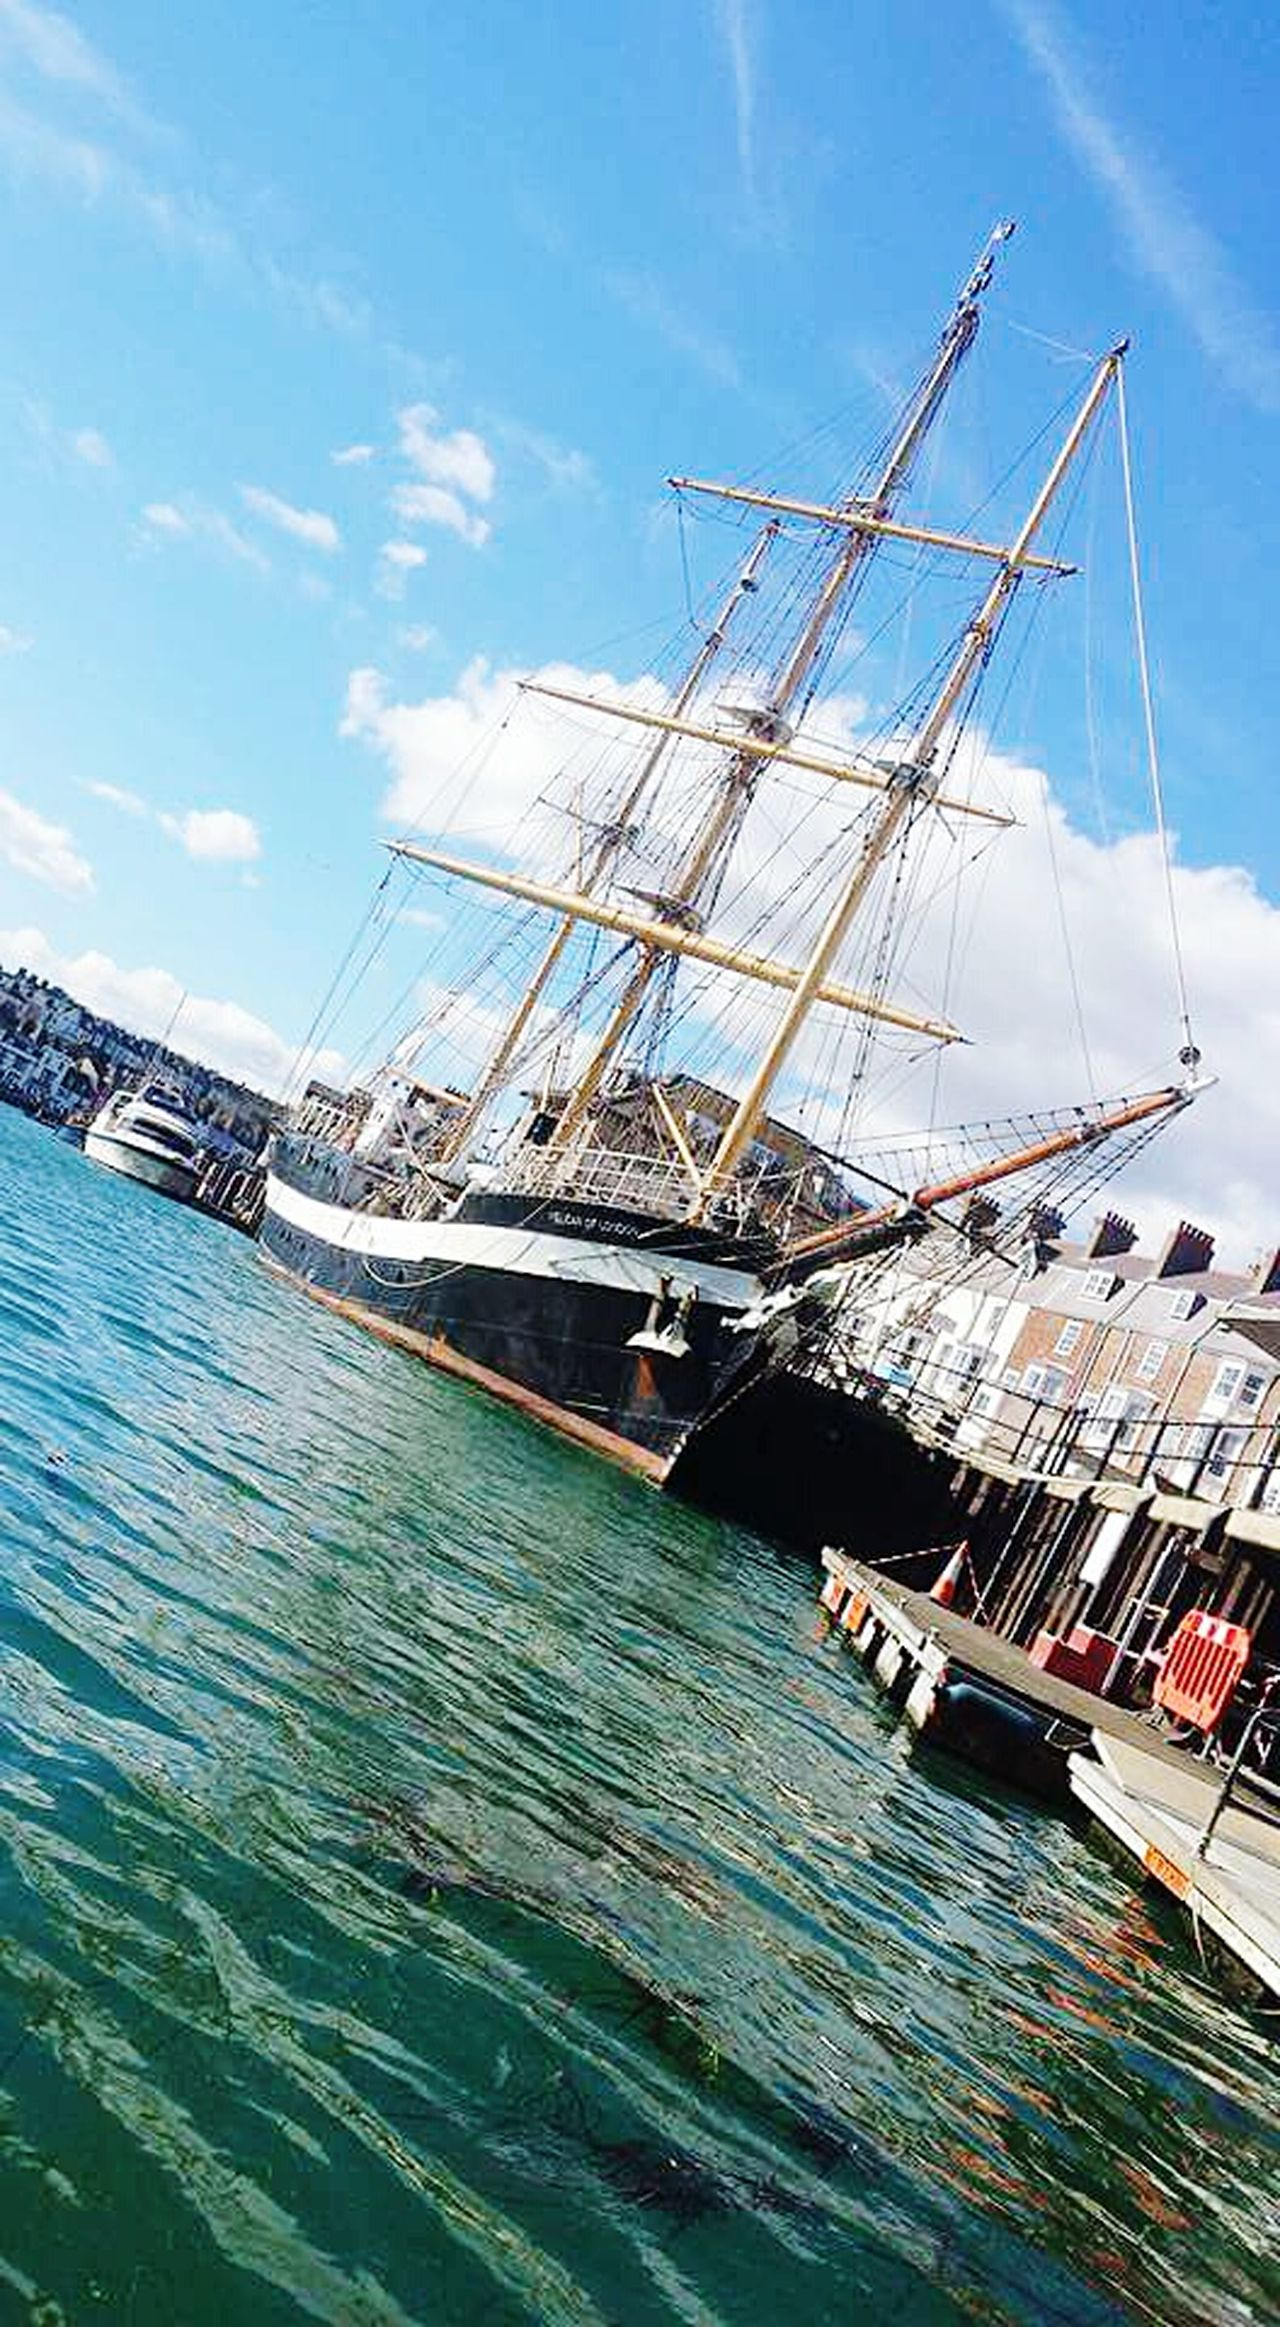 Weymouth Dorset Scenics Travel Destinations Weymouth Harbour Boats⛵️ Ships In Port